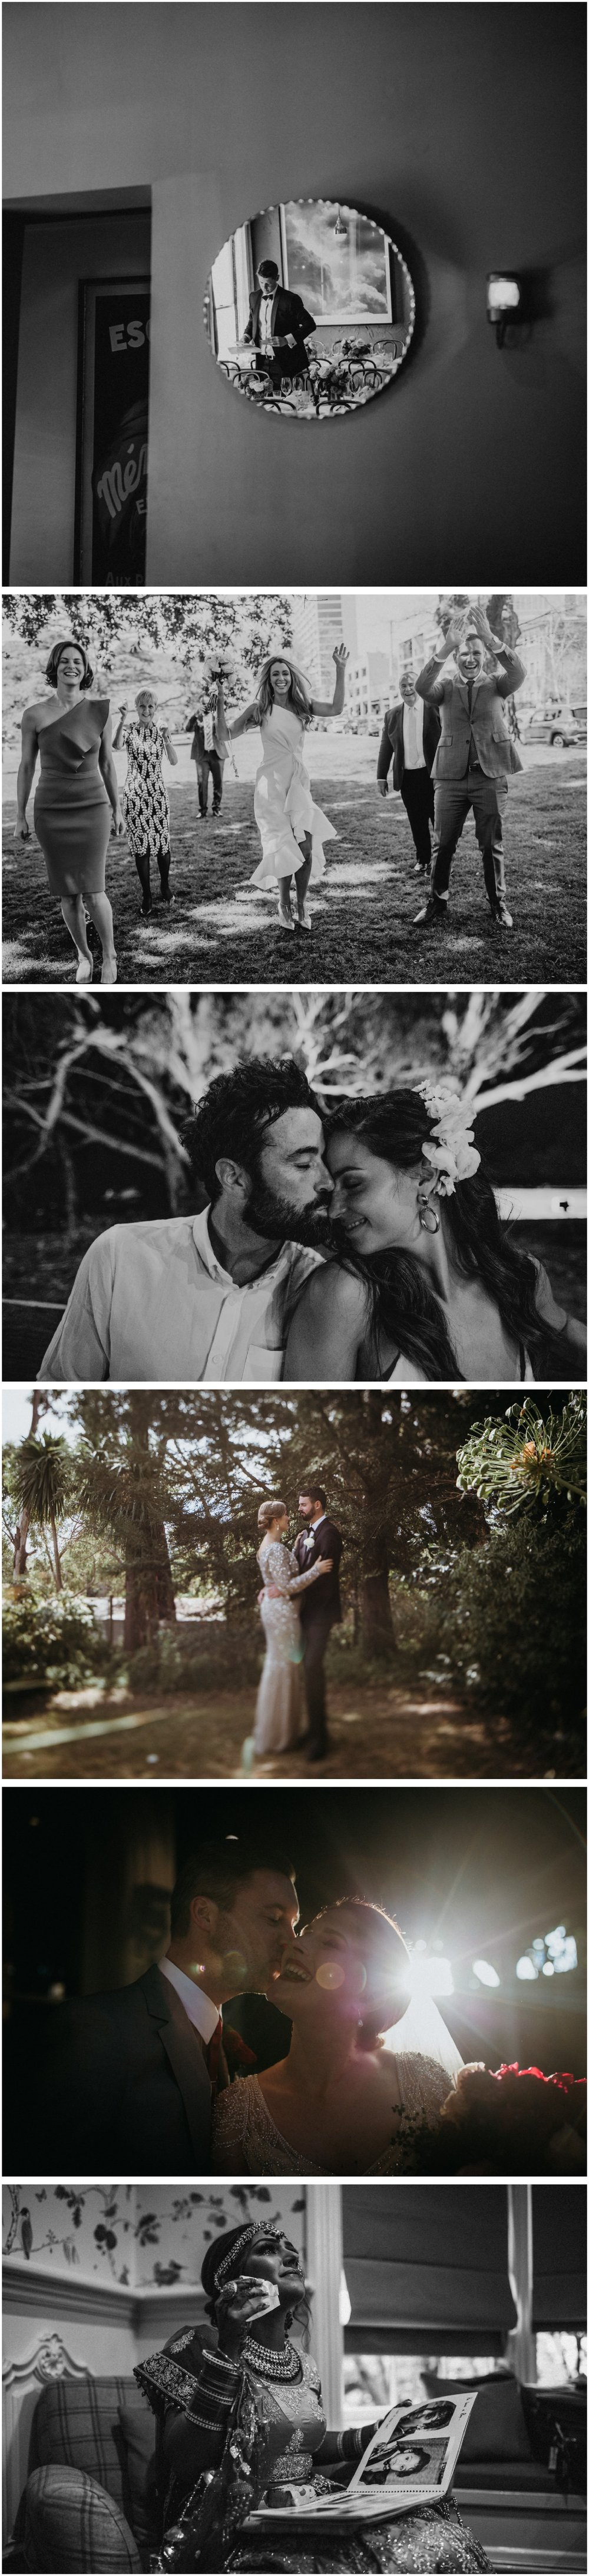 Melbourne Wedding Photographer - 2018 in review -185A5754.jpg